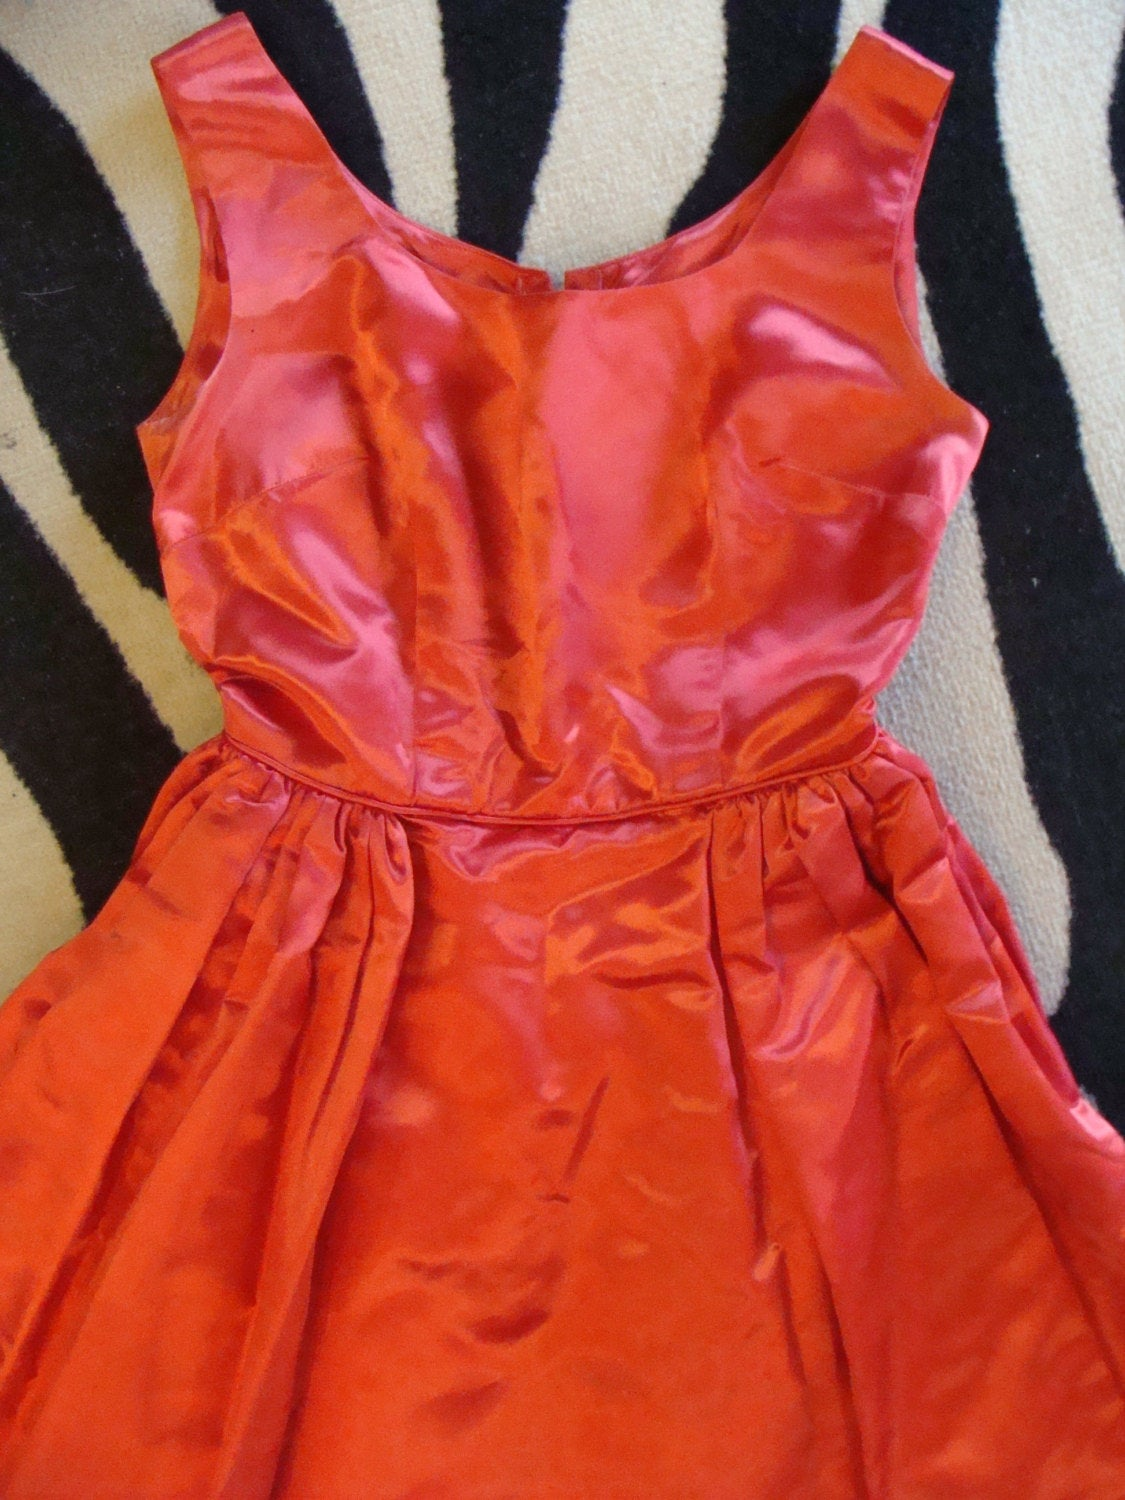 RED satin PARTY DRESS 1950's 1960's vintage 34 bust 25 waist S (F3)